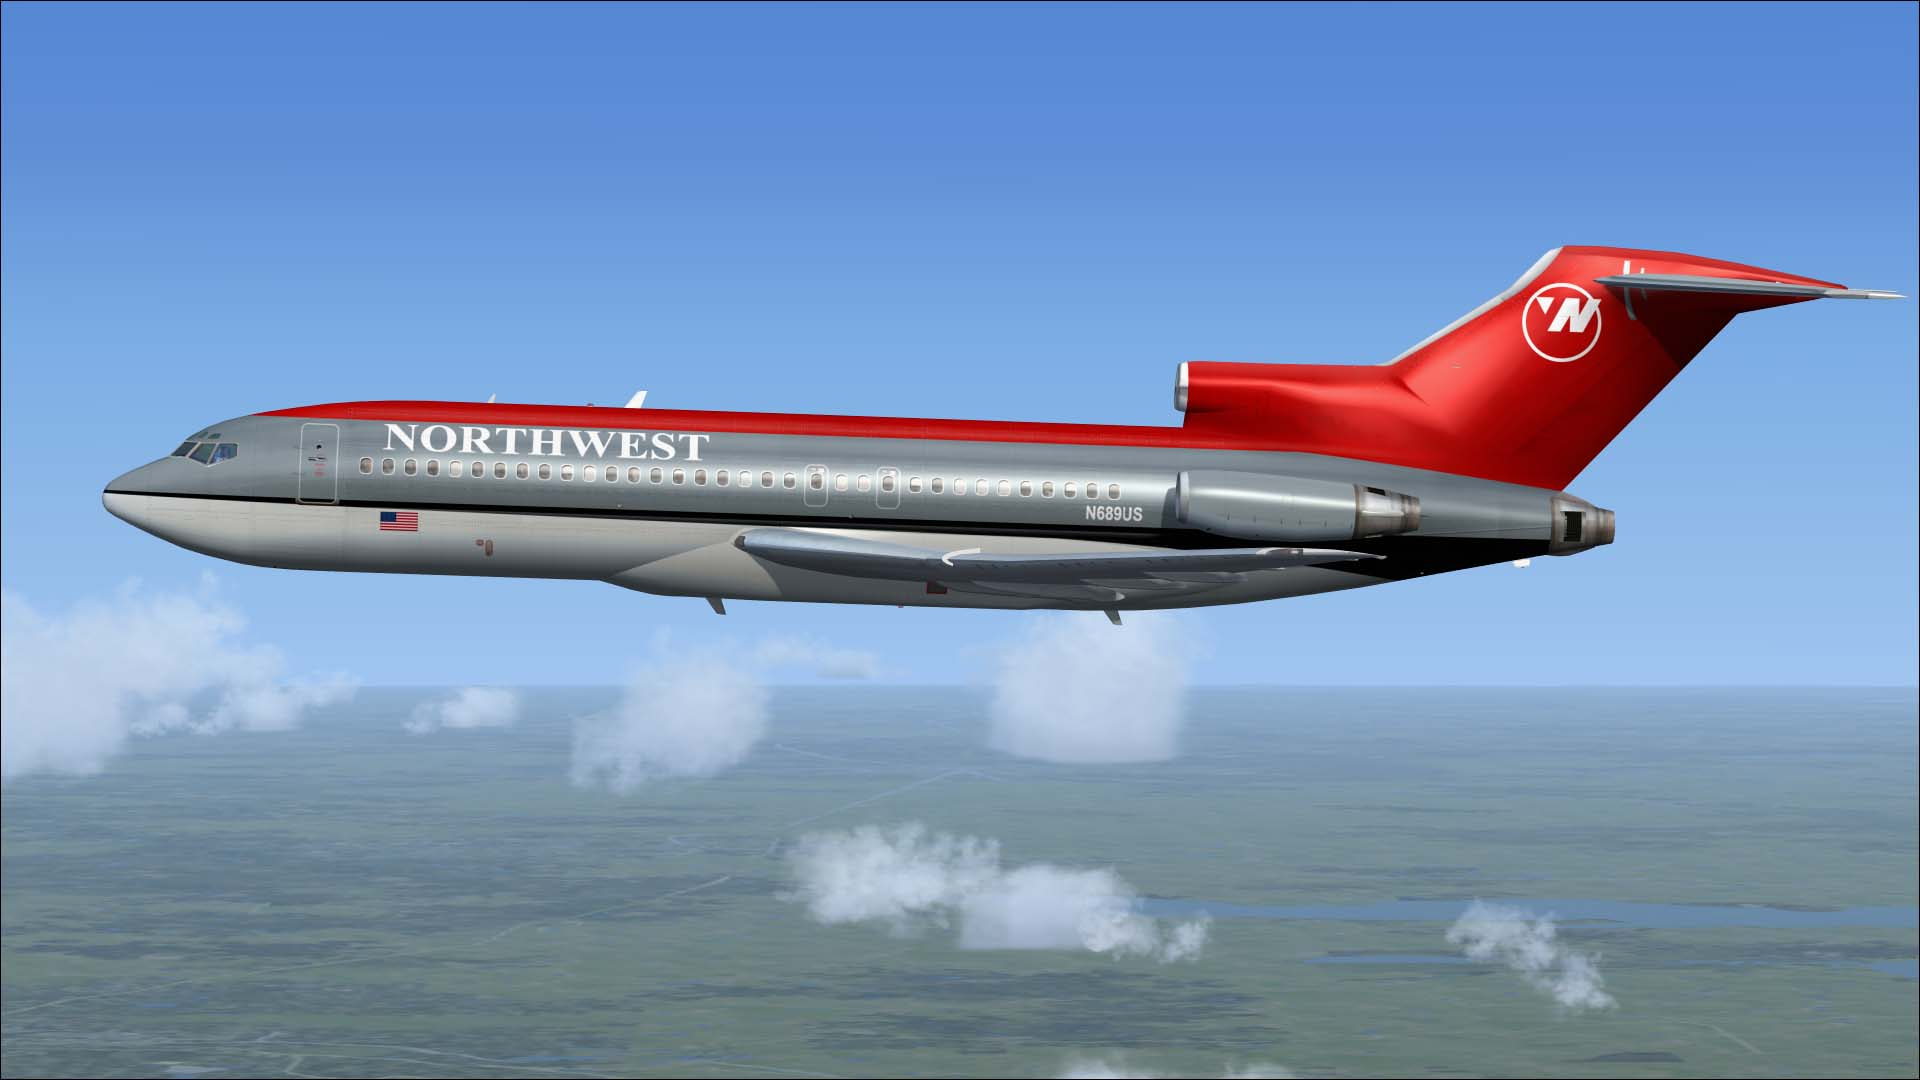 Northwest Airlines Corp Often Abbreviated As NWA Was A Major United States Airline Founded In 1926 And Absorbed Into Delta Air